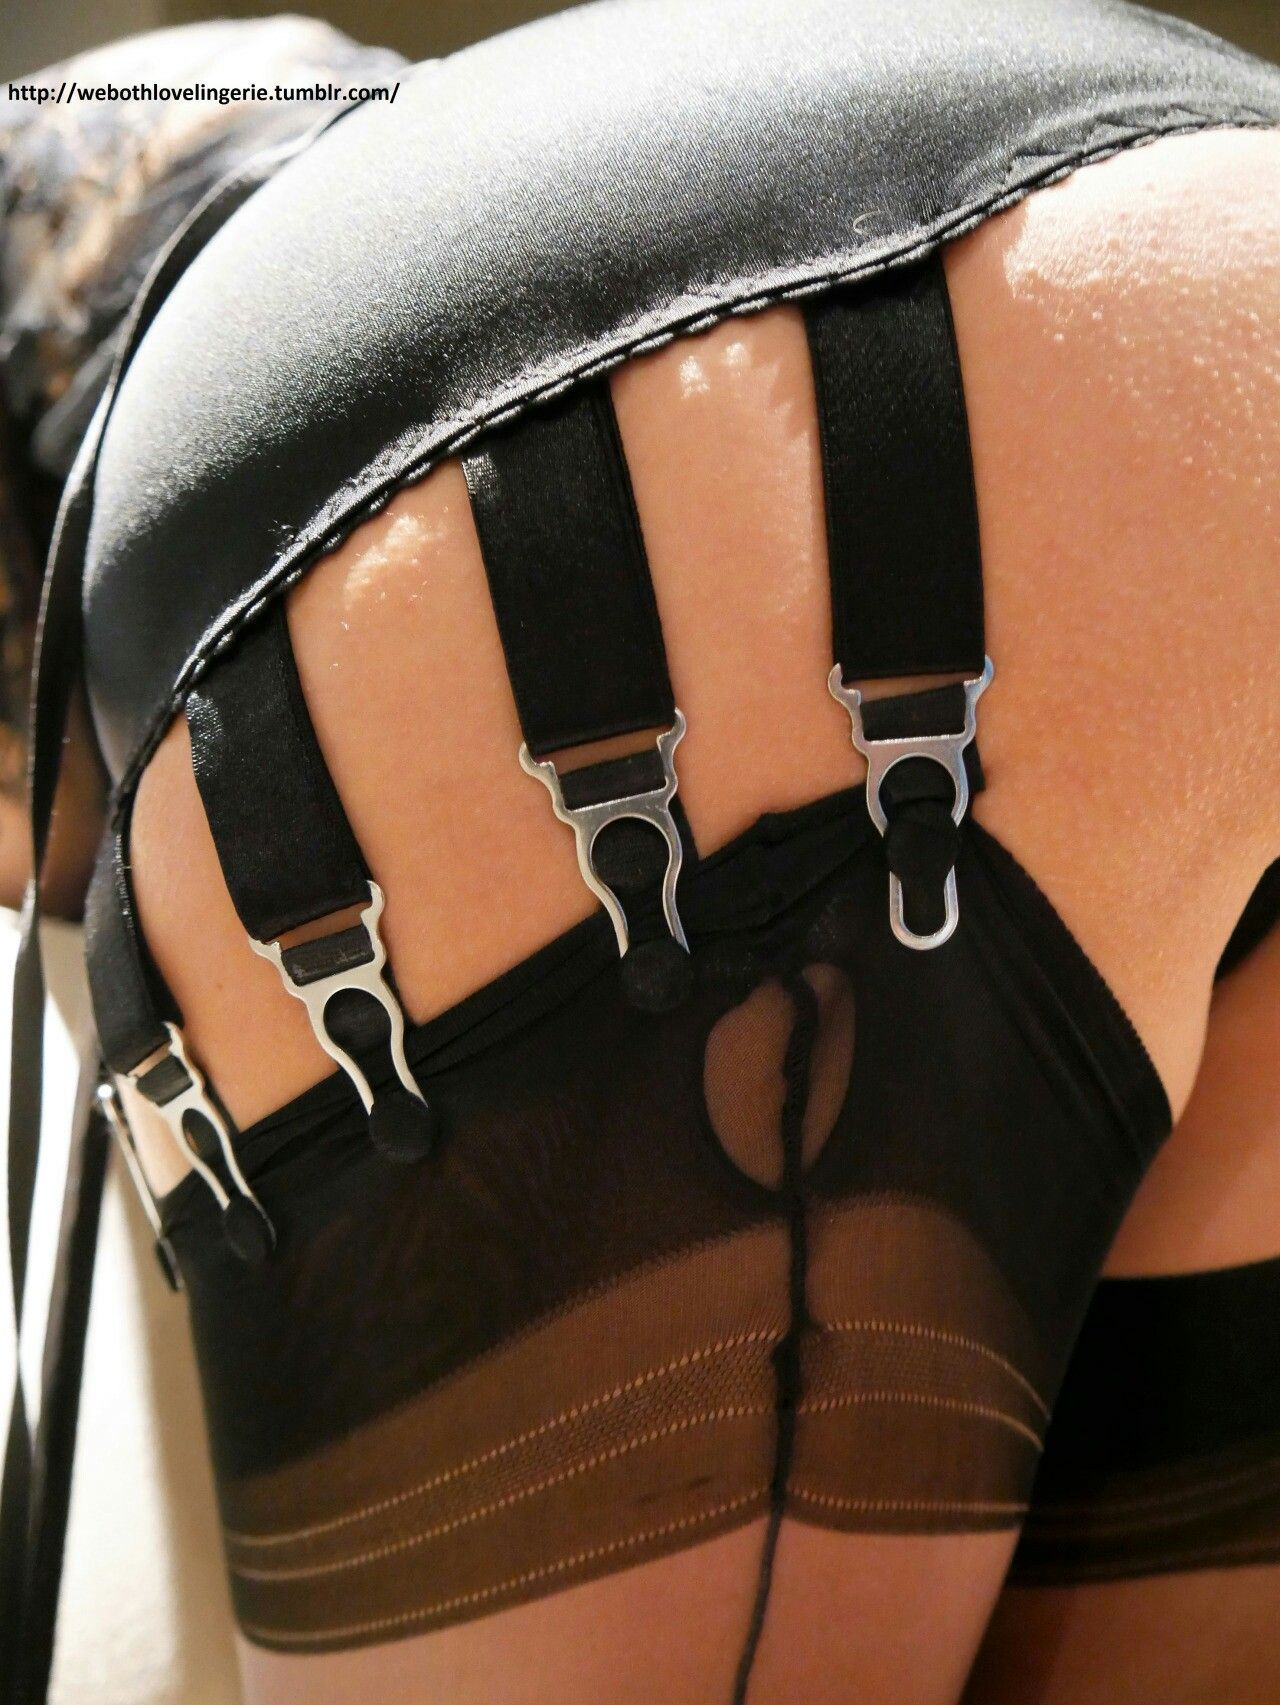 Le Meilleur Pin By Dave C On Stockings And Pinterest Ce Mois Ci